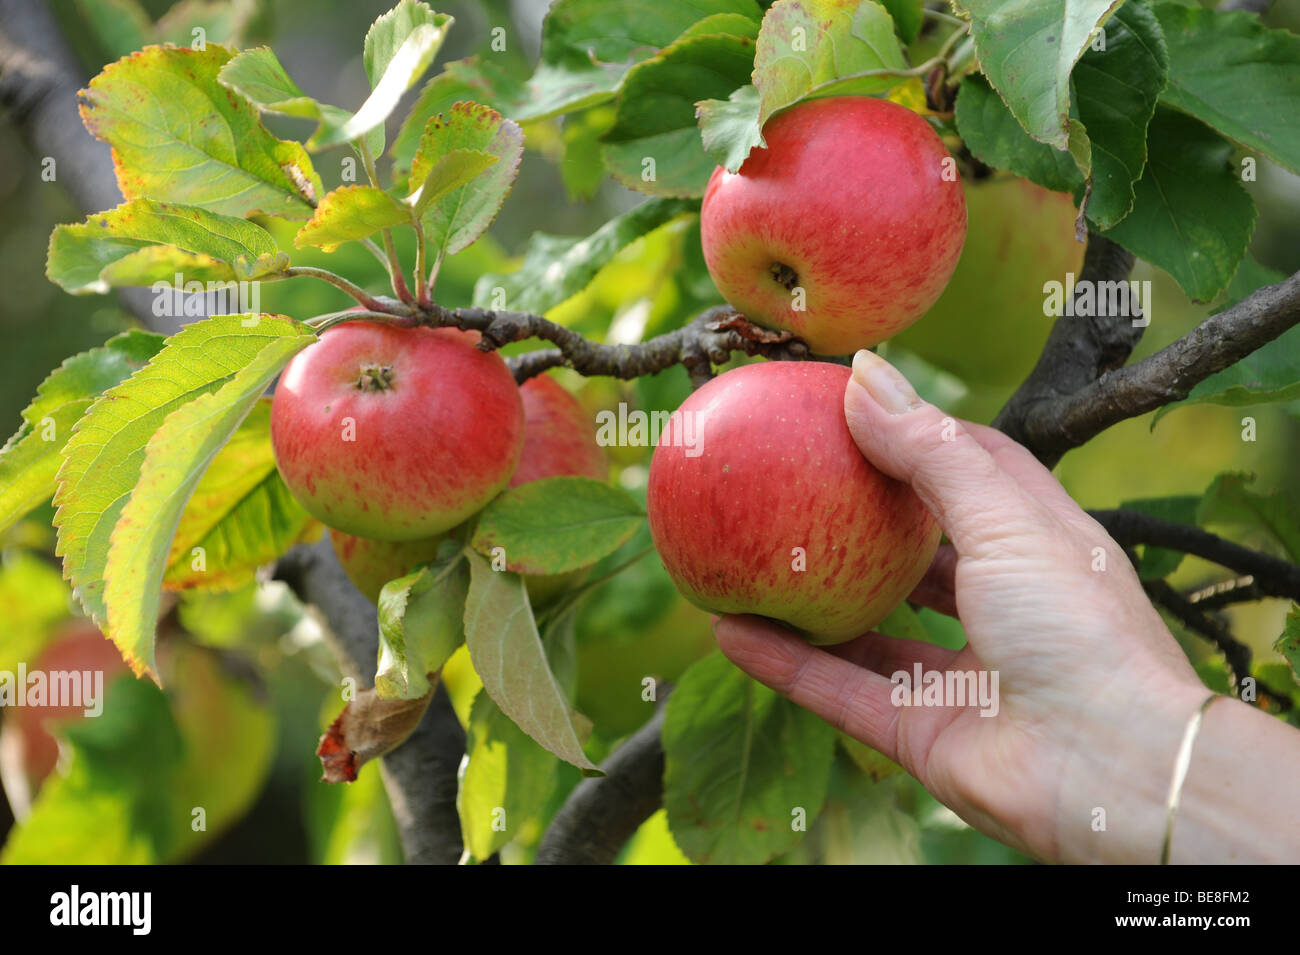 Hand picking ripe red apples - Stock Image